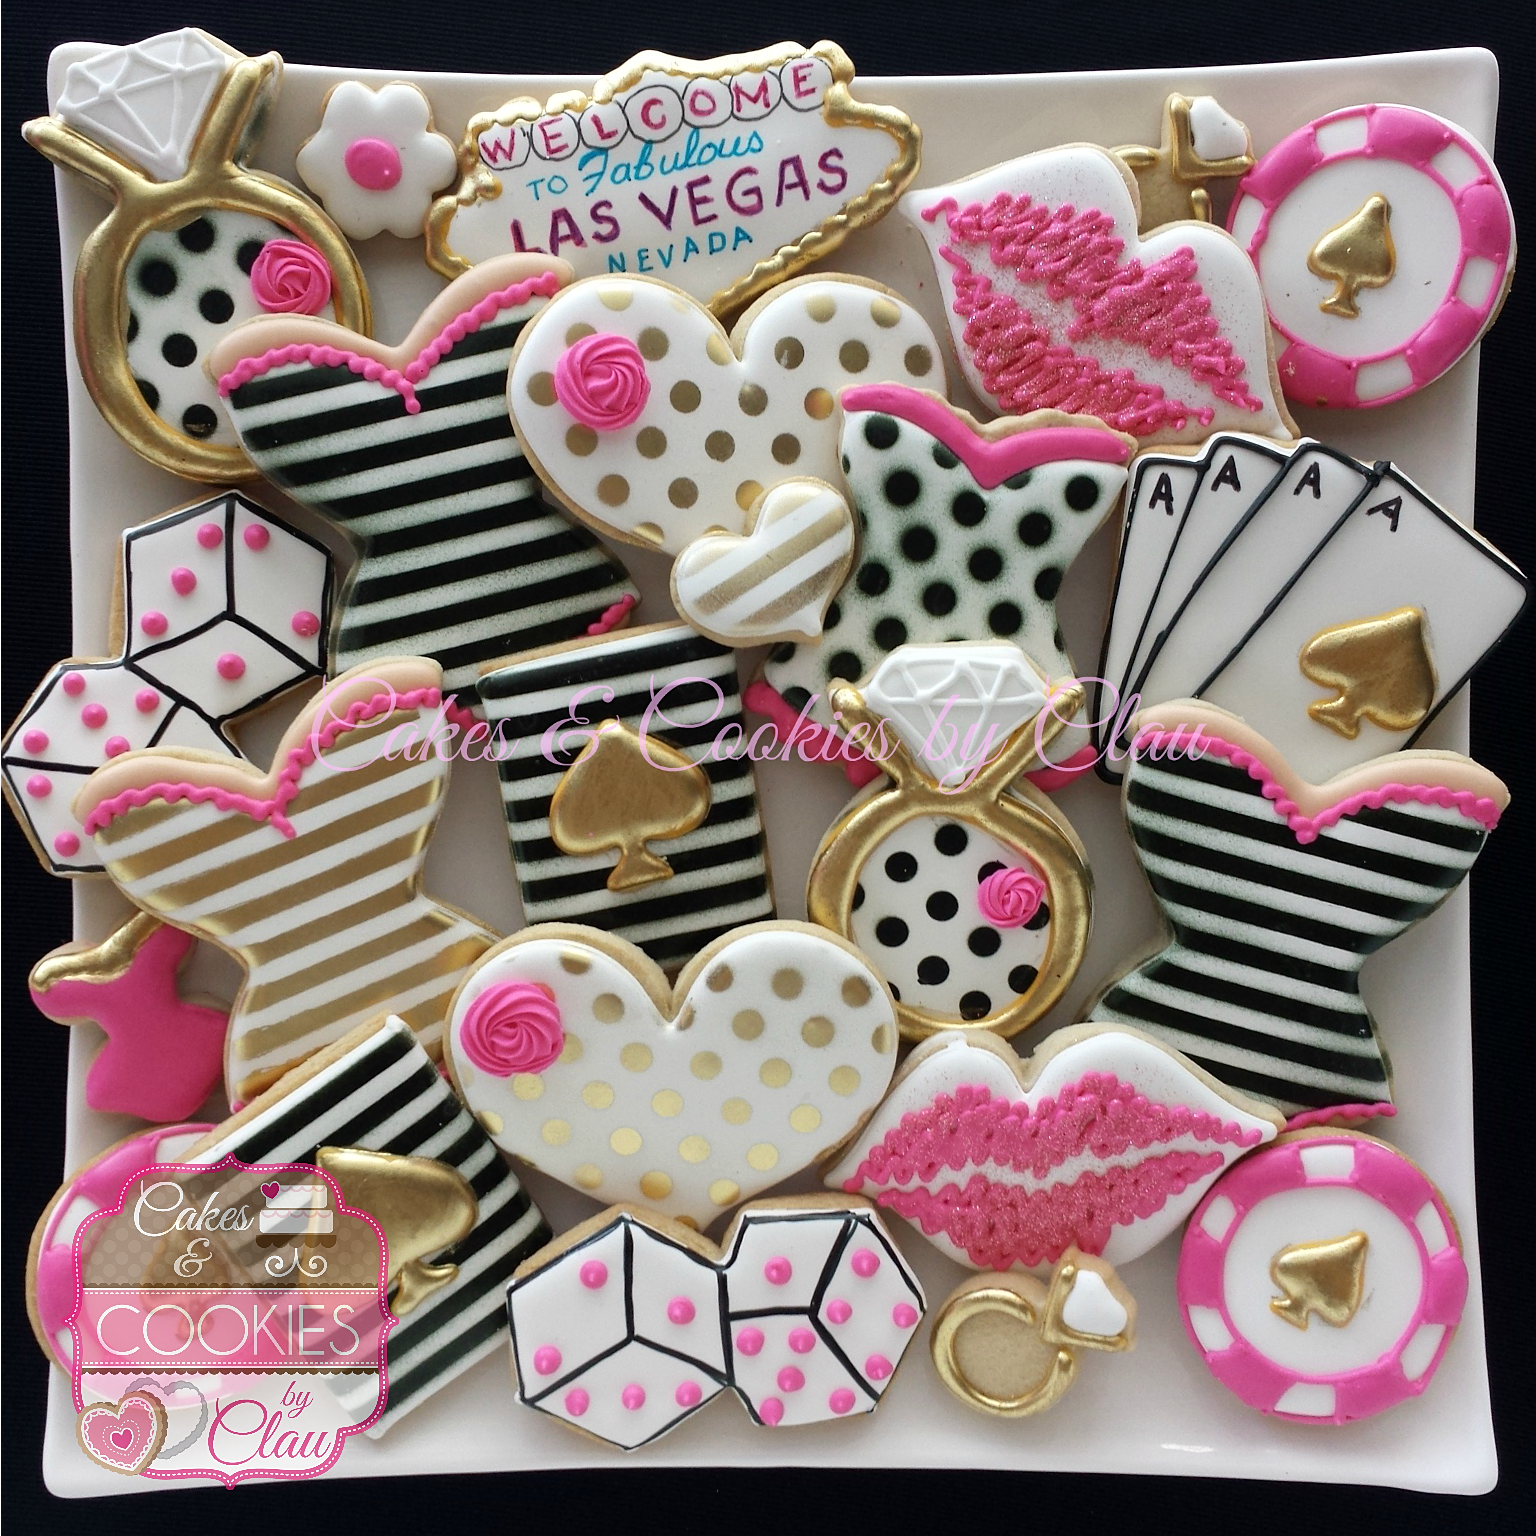 Cakes Cookies by Clau Custom Decorated Sugar Cookies Houston TX